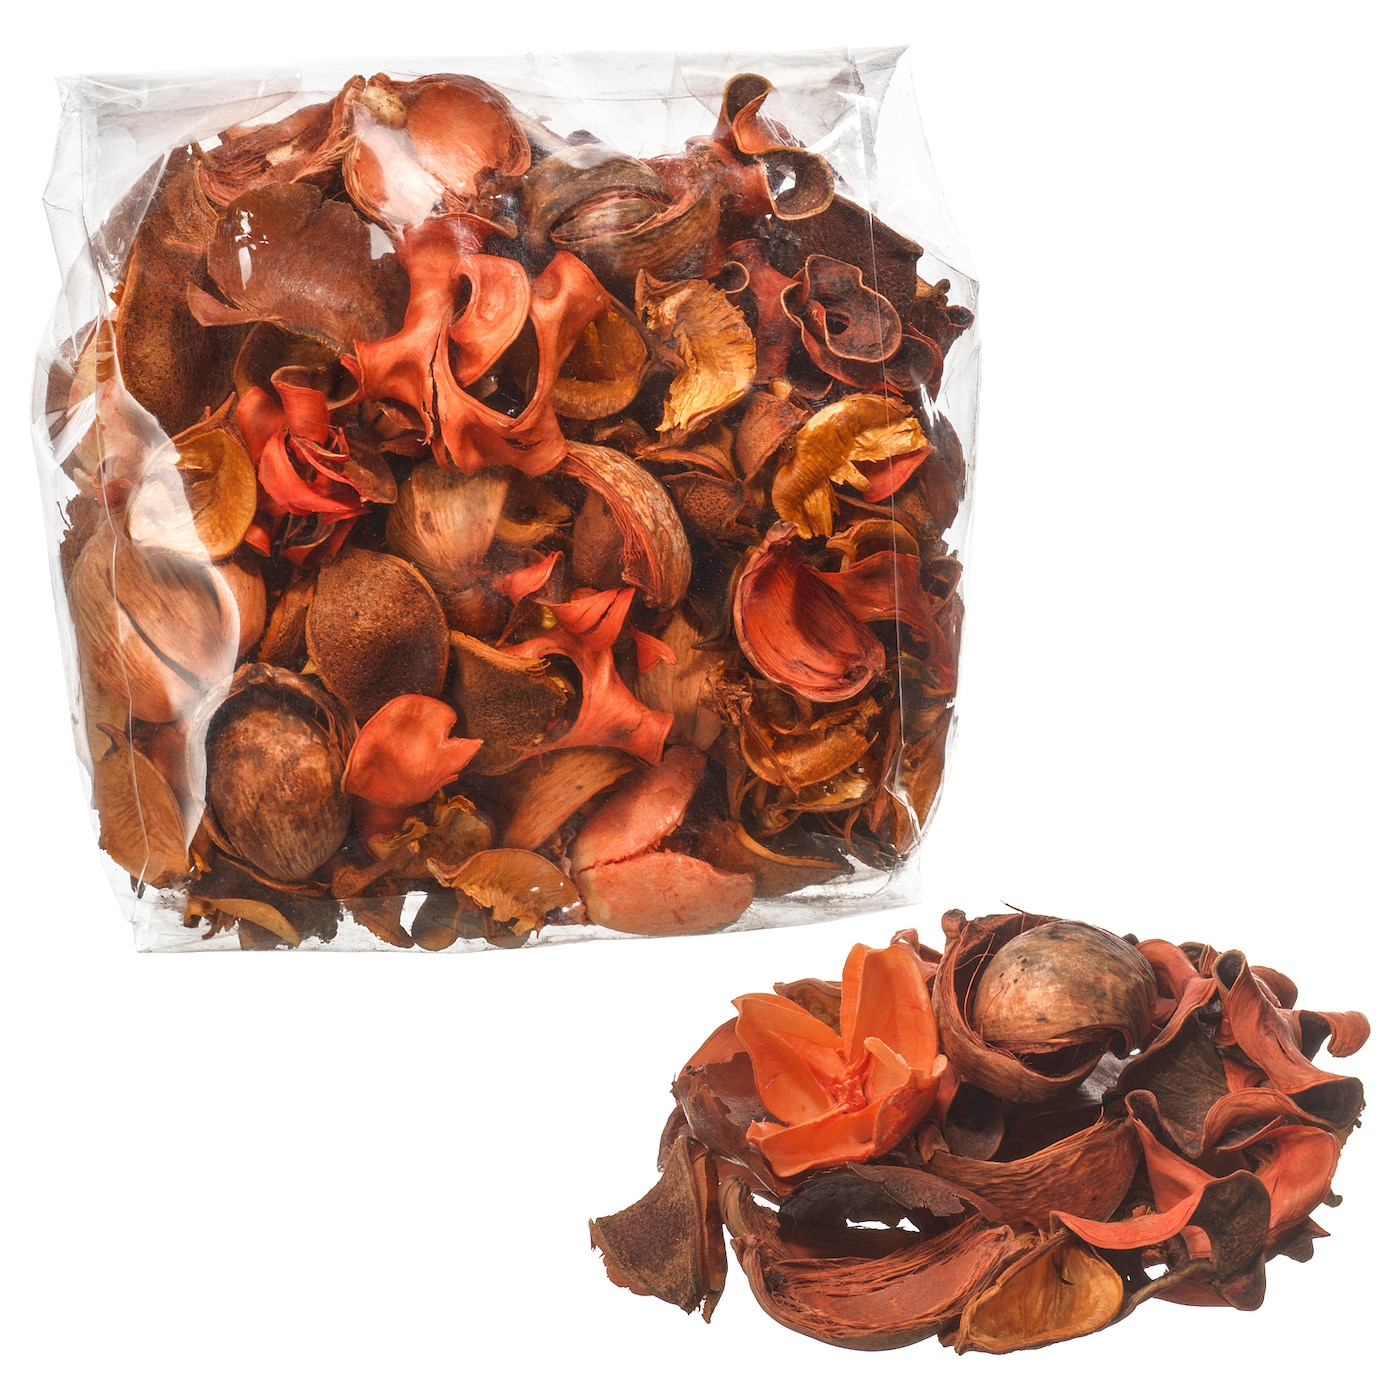 IKEA DOFTA potpourri Scent of ripe peaches and exotic fruits with hints of fresh oranges.